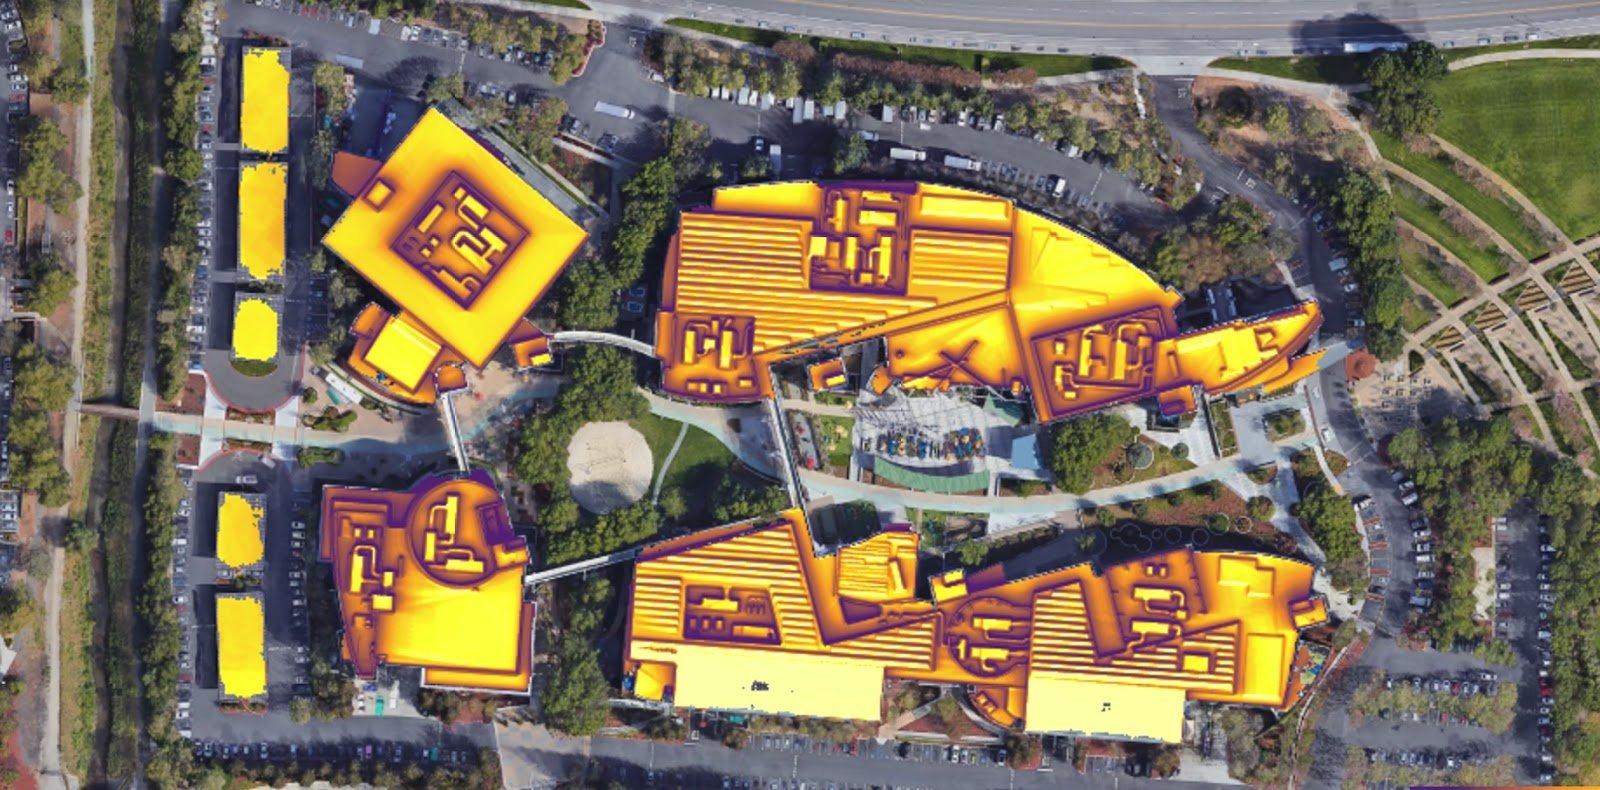 Google's campus in Mountain View, as viewed in Project Sunroof.